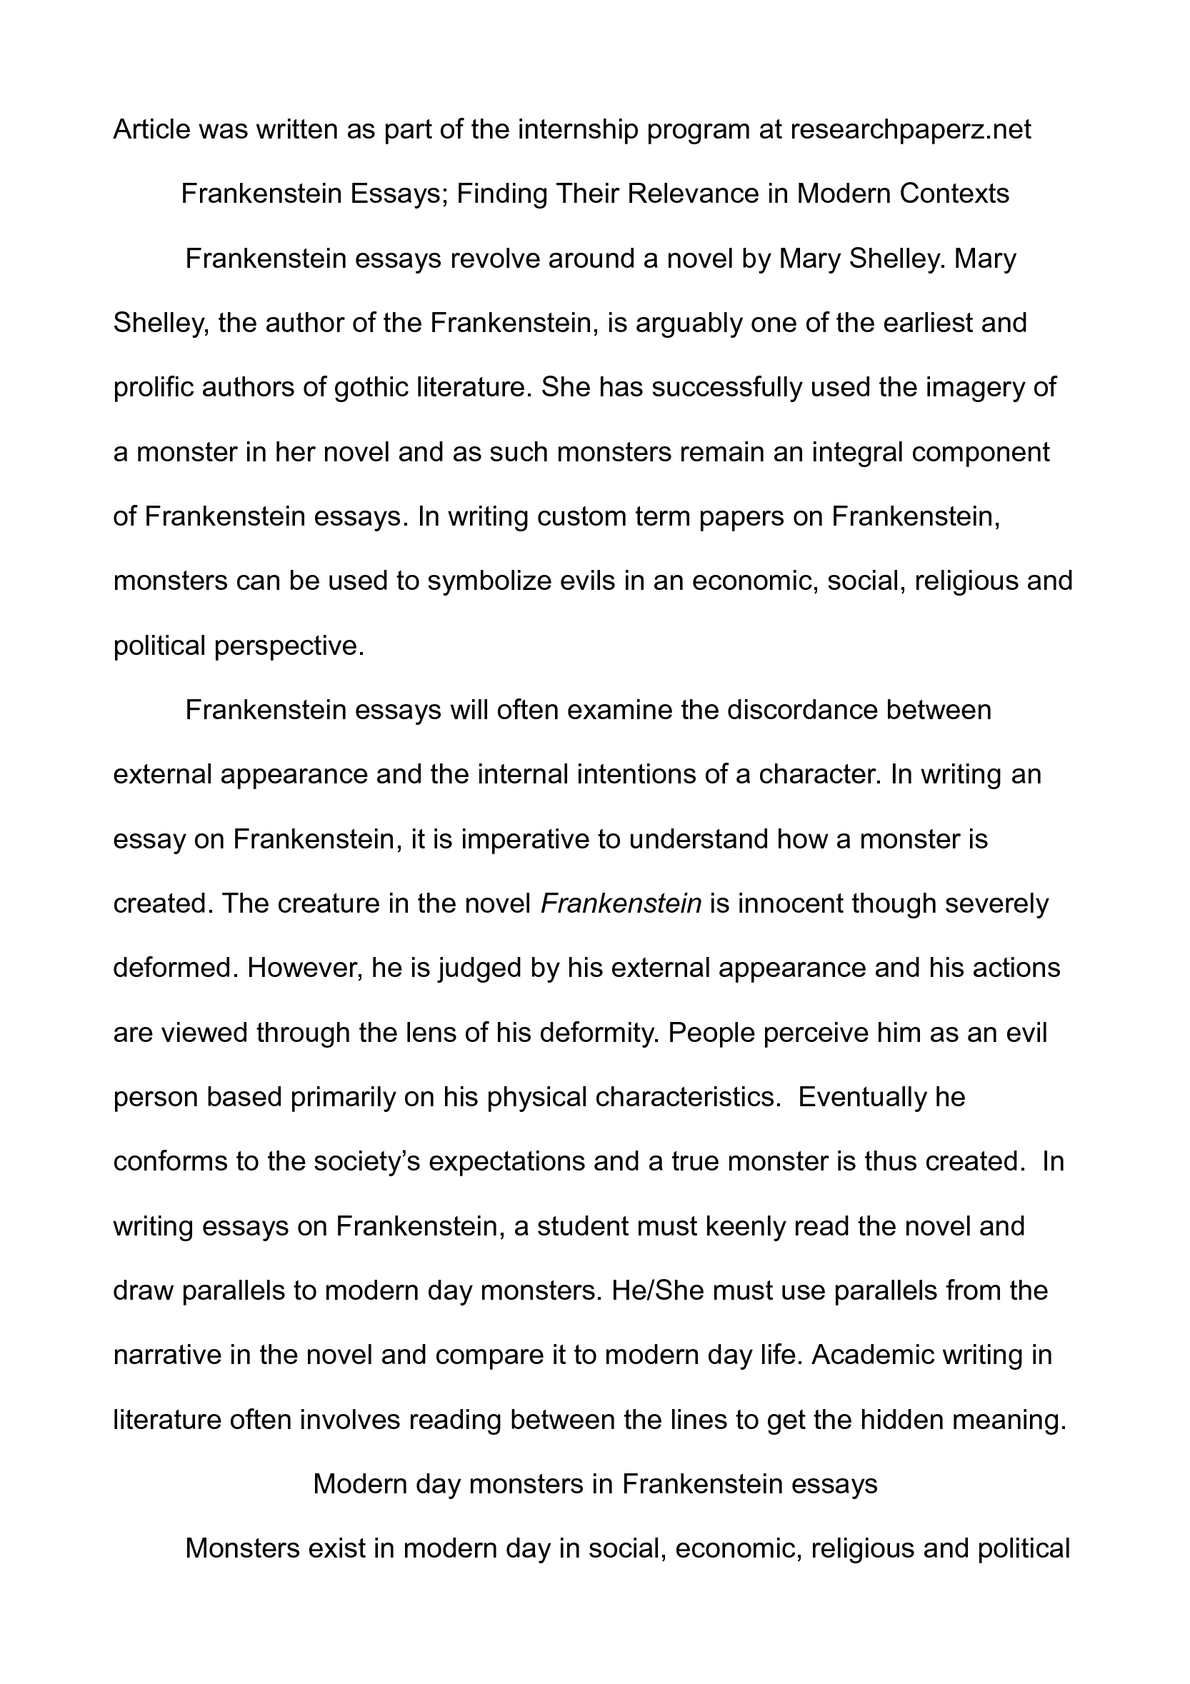 Intro to frankenstein essay professional report ghostwriting services for mba